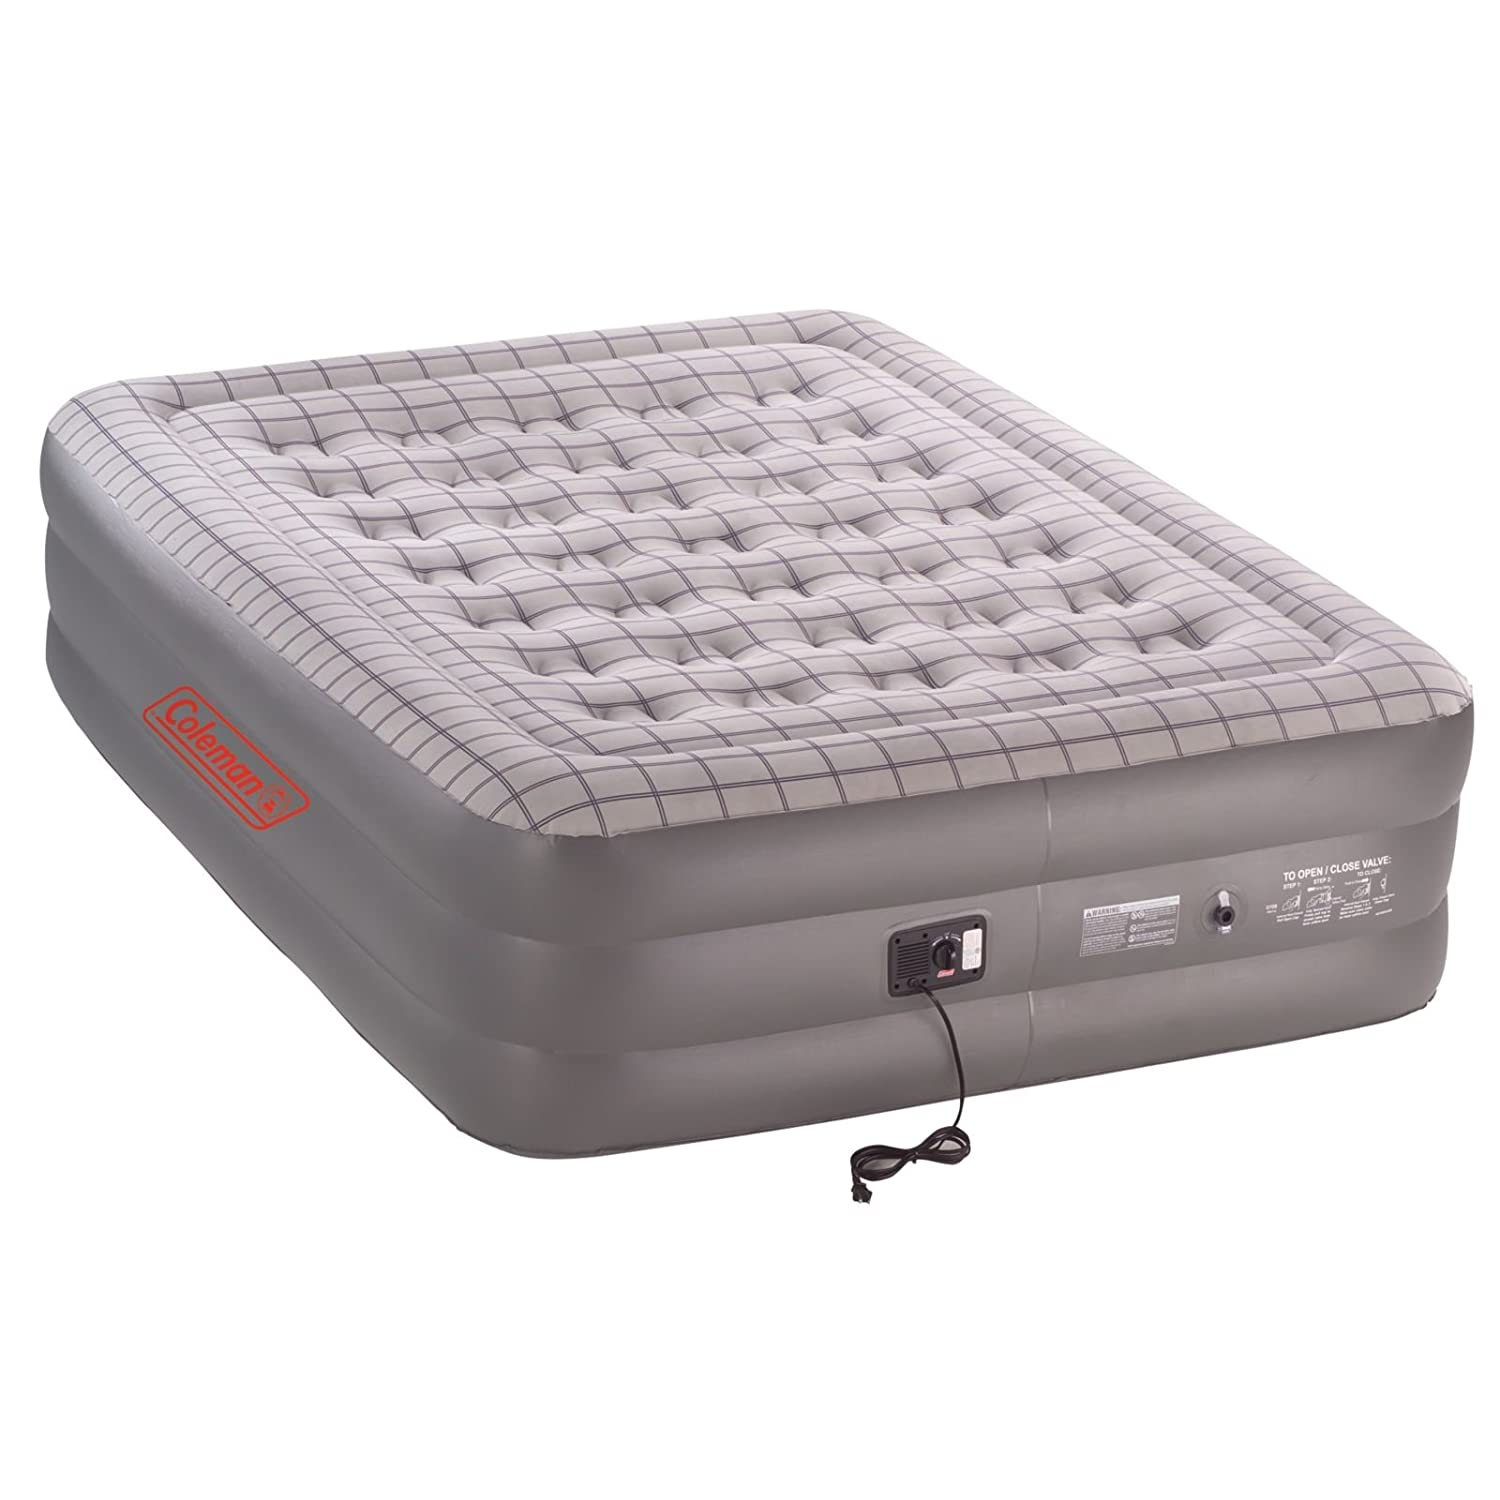 heavy duty king size bed frame our recommendation for best camping air mattress for heavy